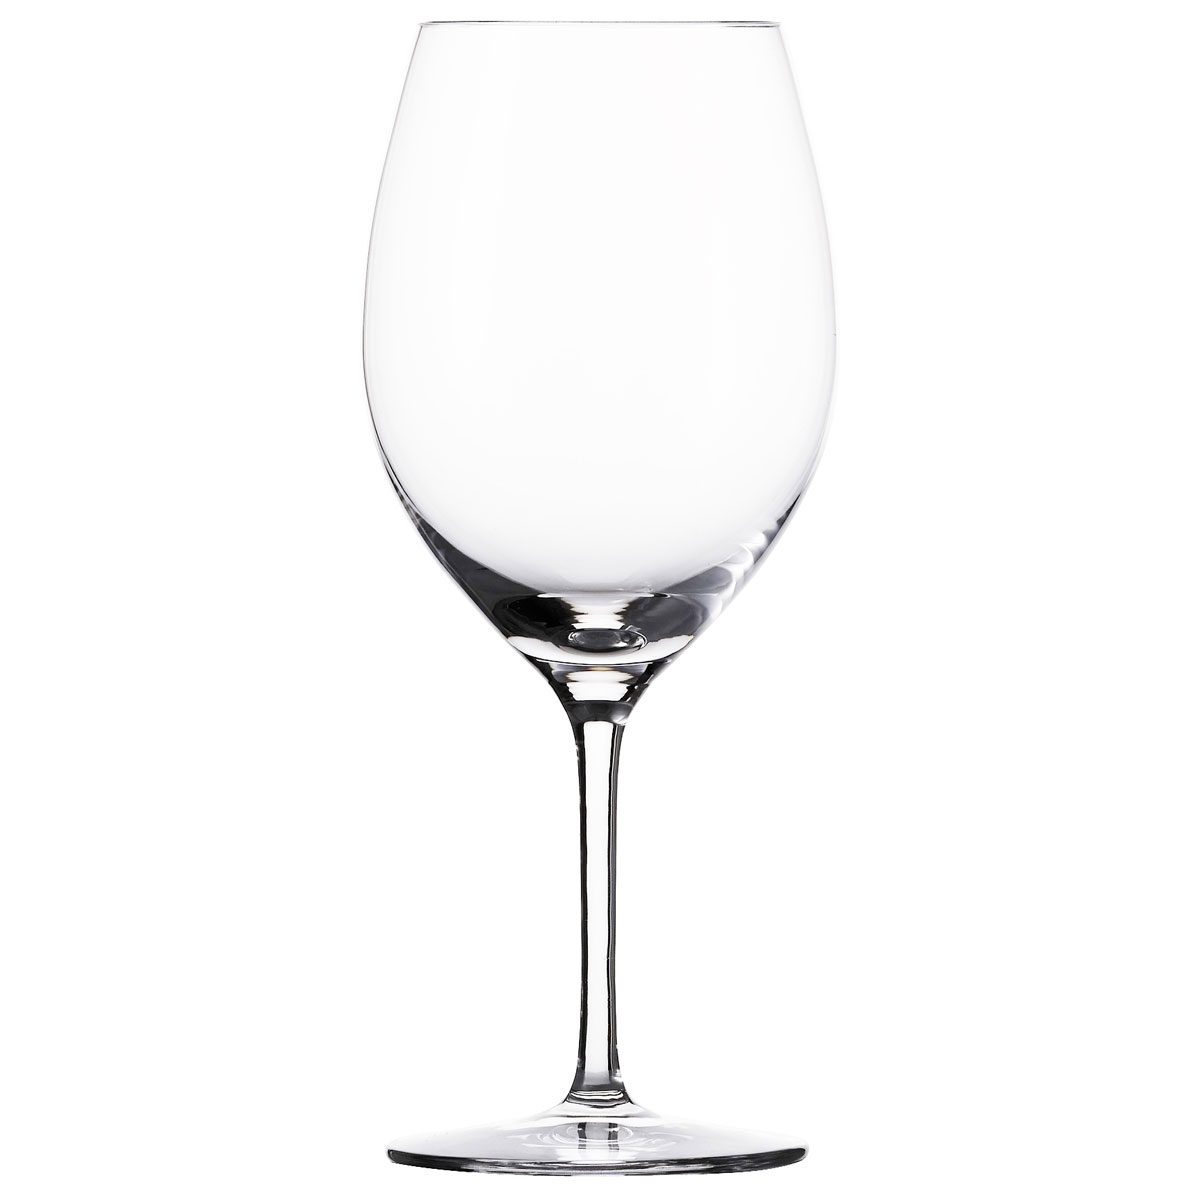 Schott Zwiesel Tritan Crystal, Cru Classic Bordeaux, Cabernet Glass, Single